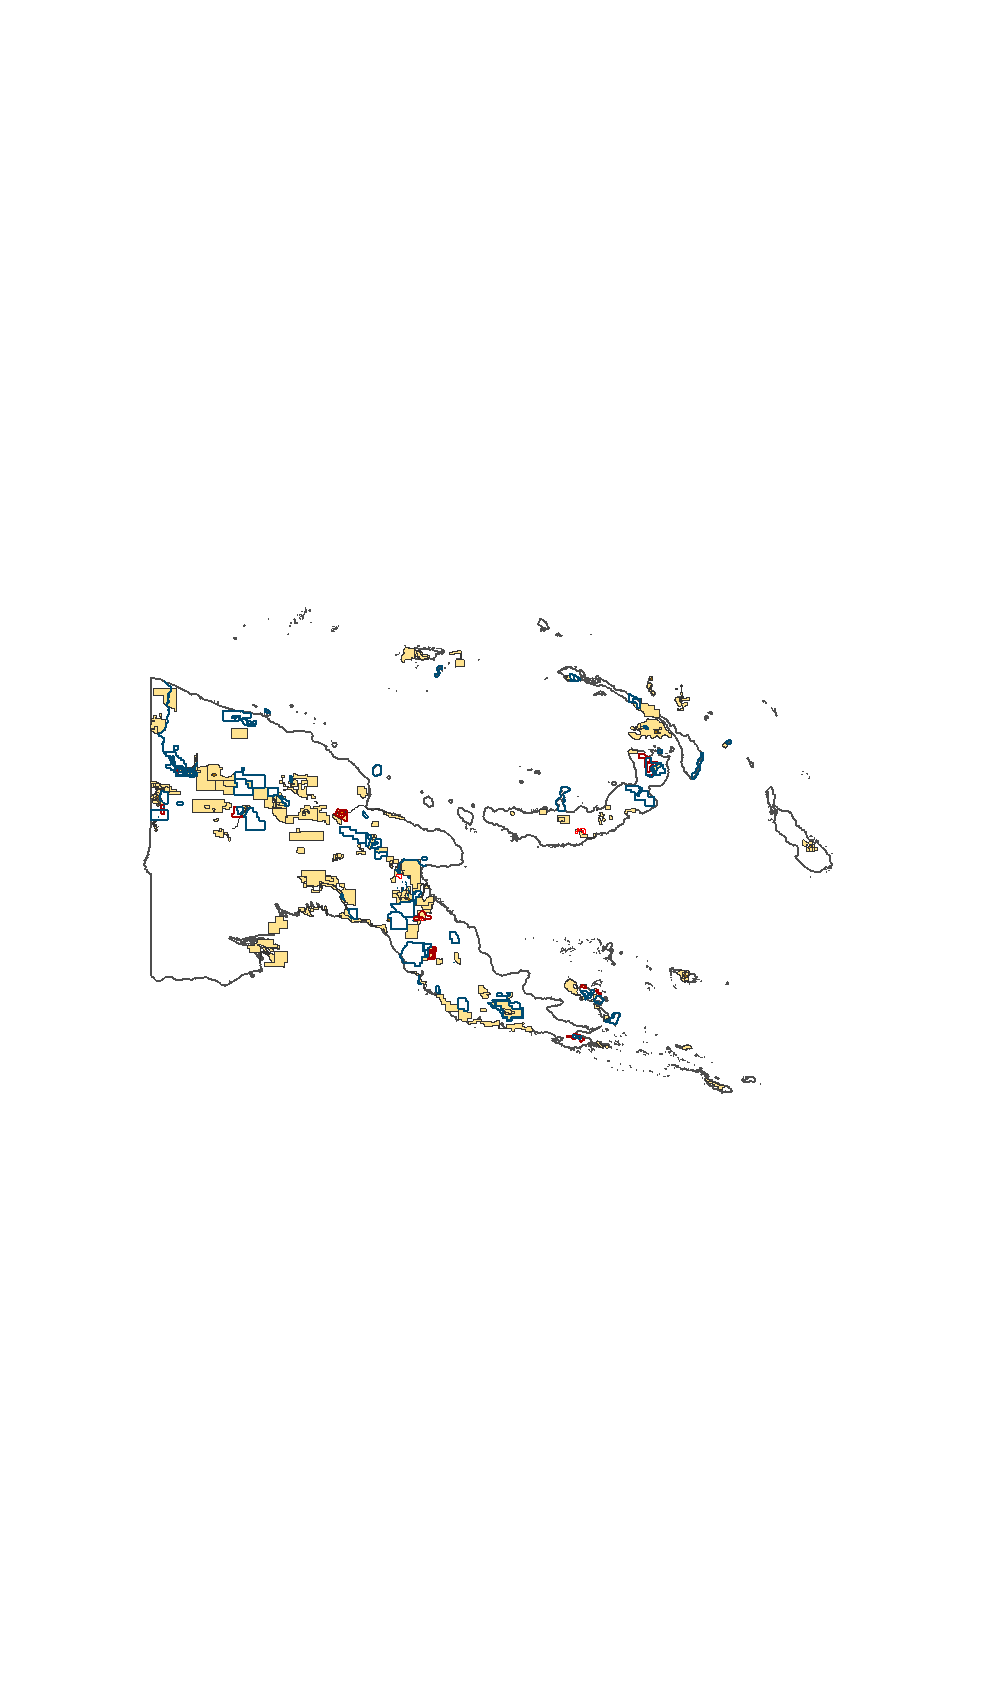 Kokopo map download free clipart with a transparent.